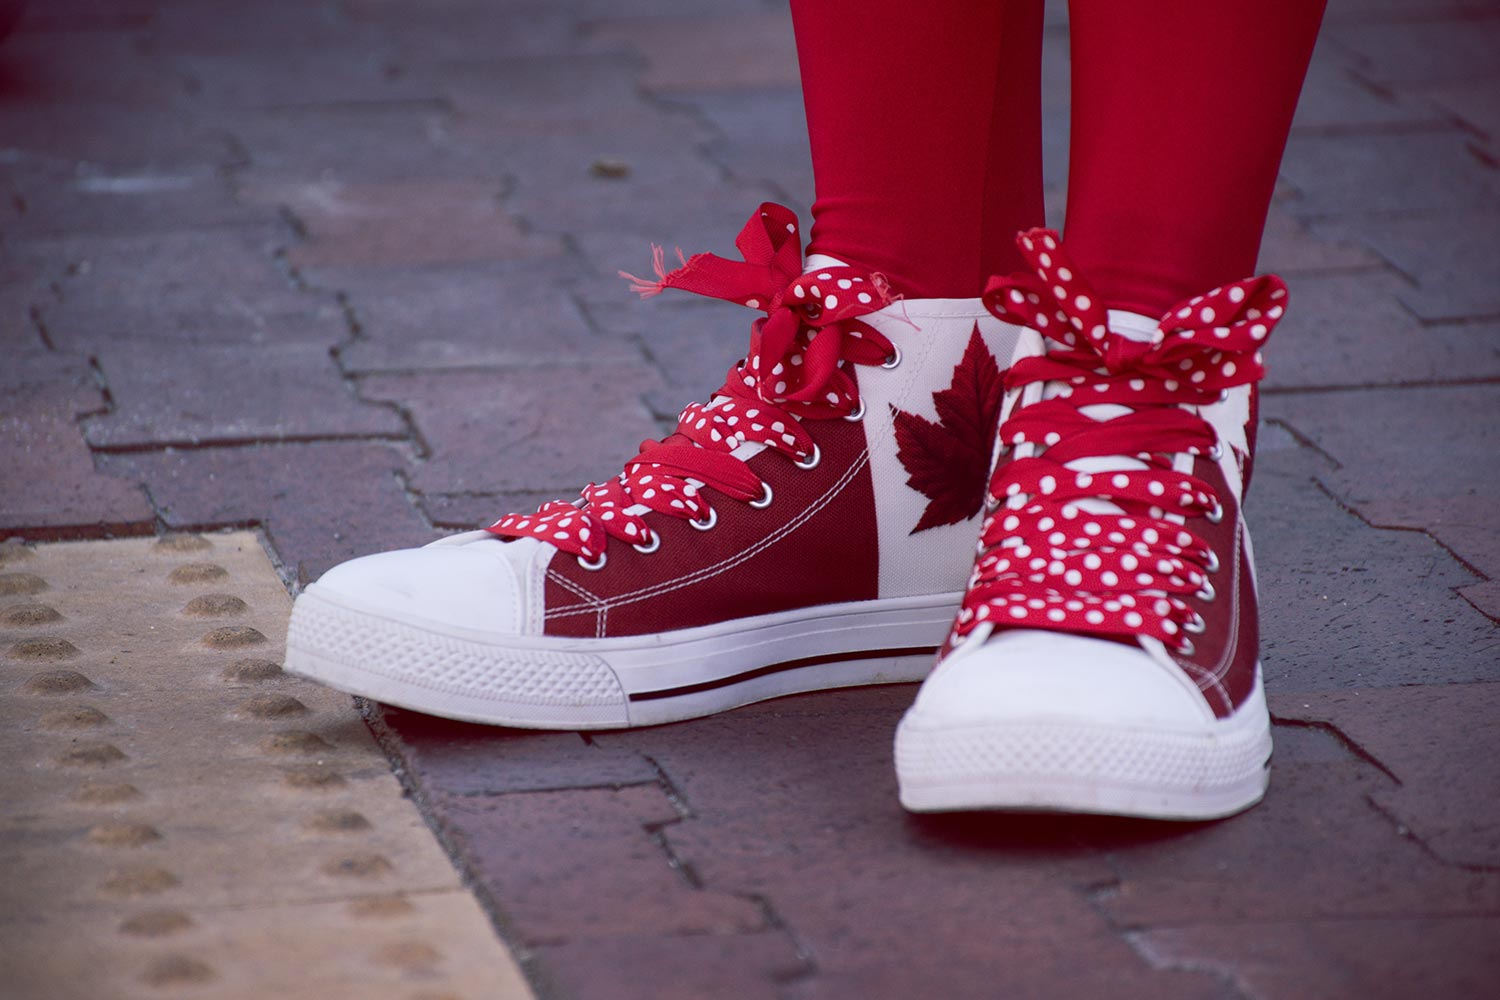 Image of Canadian flag-themed shoes